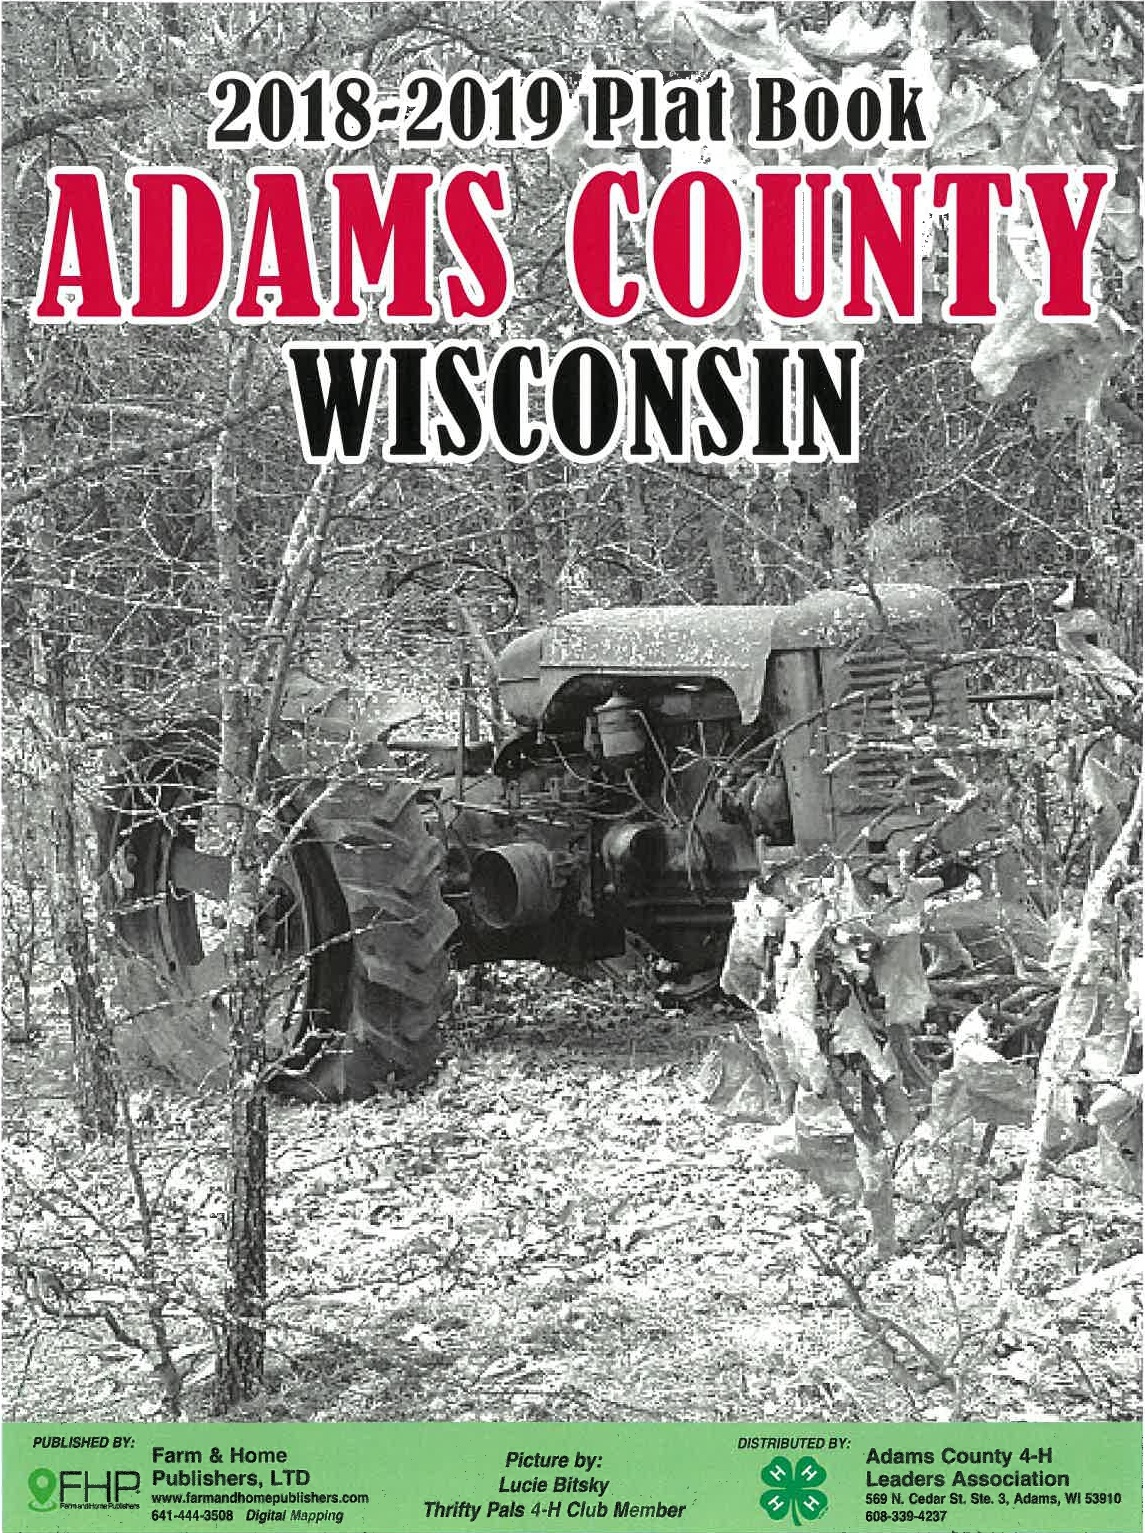 Extension Adams County – University of Wisconsin-Madison